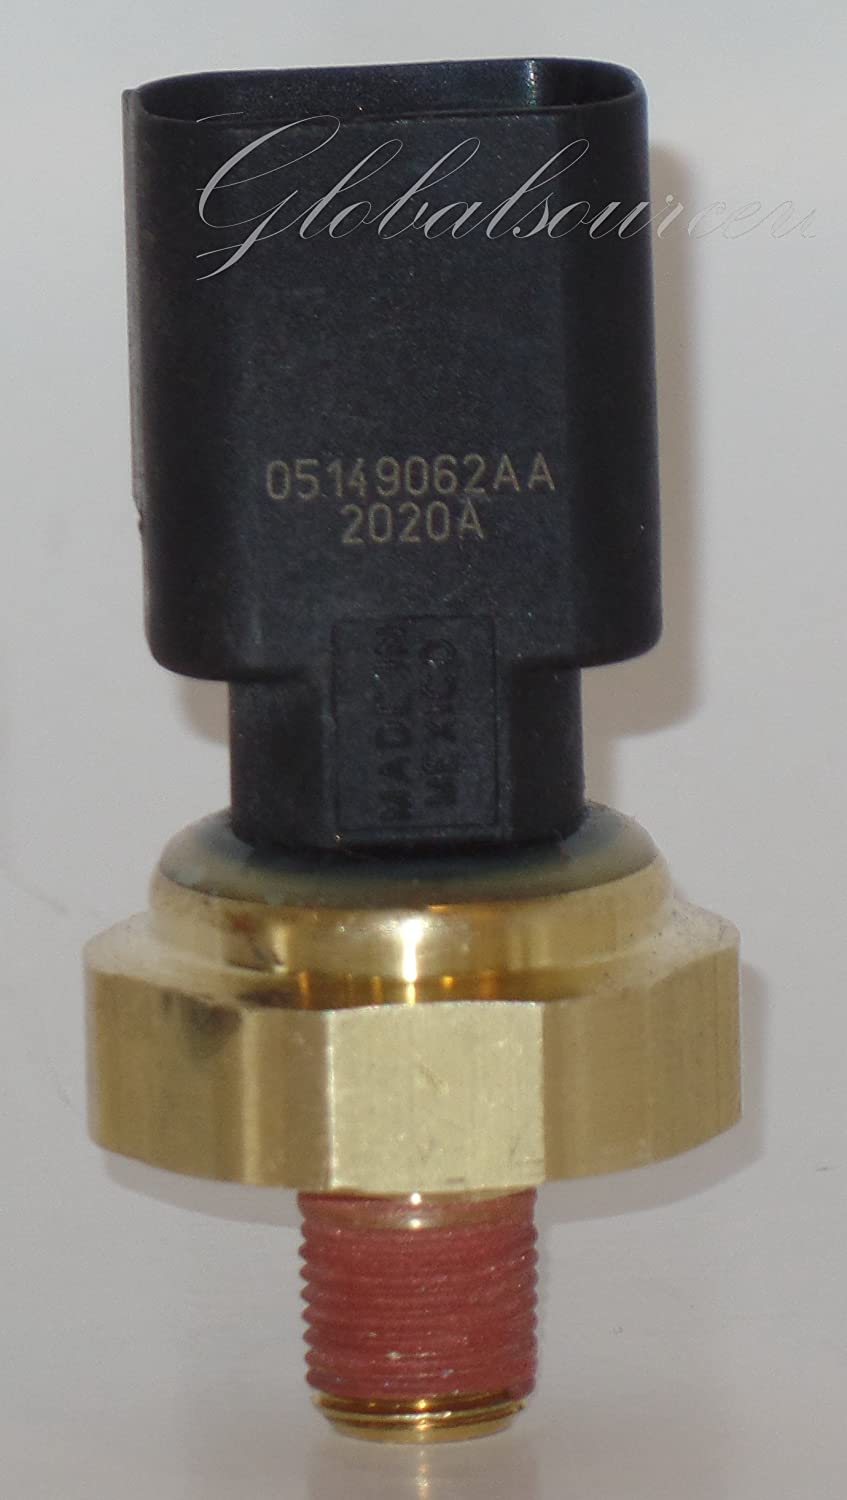 05149062AA OIL Sales of SALE Over item handling ☆ items from new works PRESSURE SWITCH SENSOR FITS: AVENGER DODGE 11-14